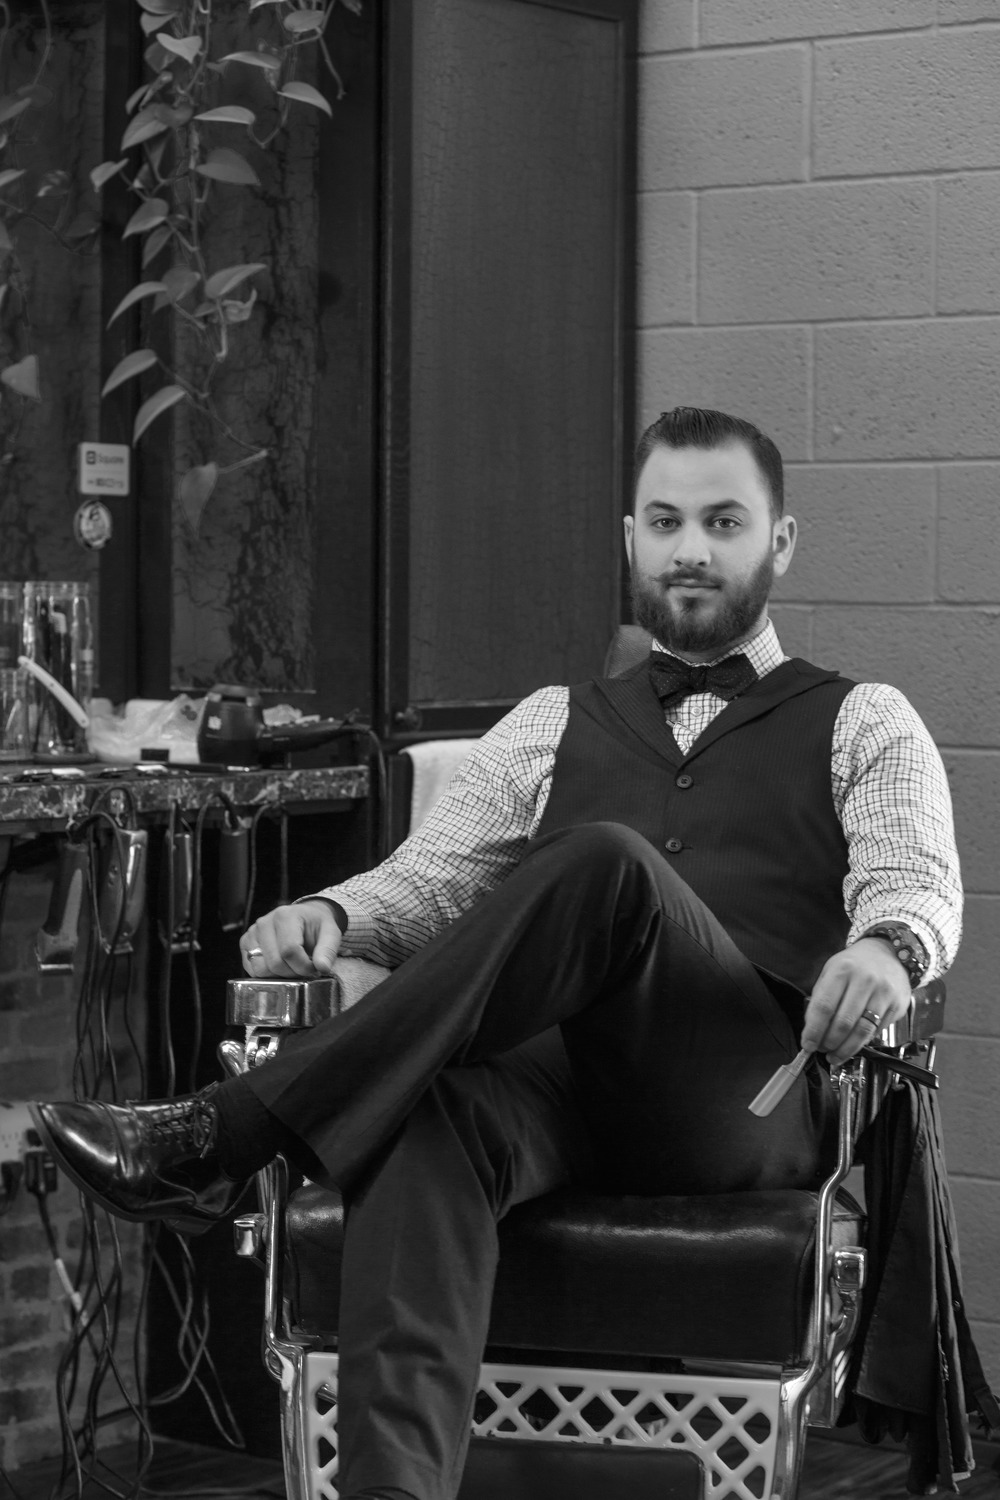 Barber Gentleman Classic Portrait Black and White